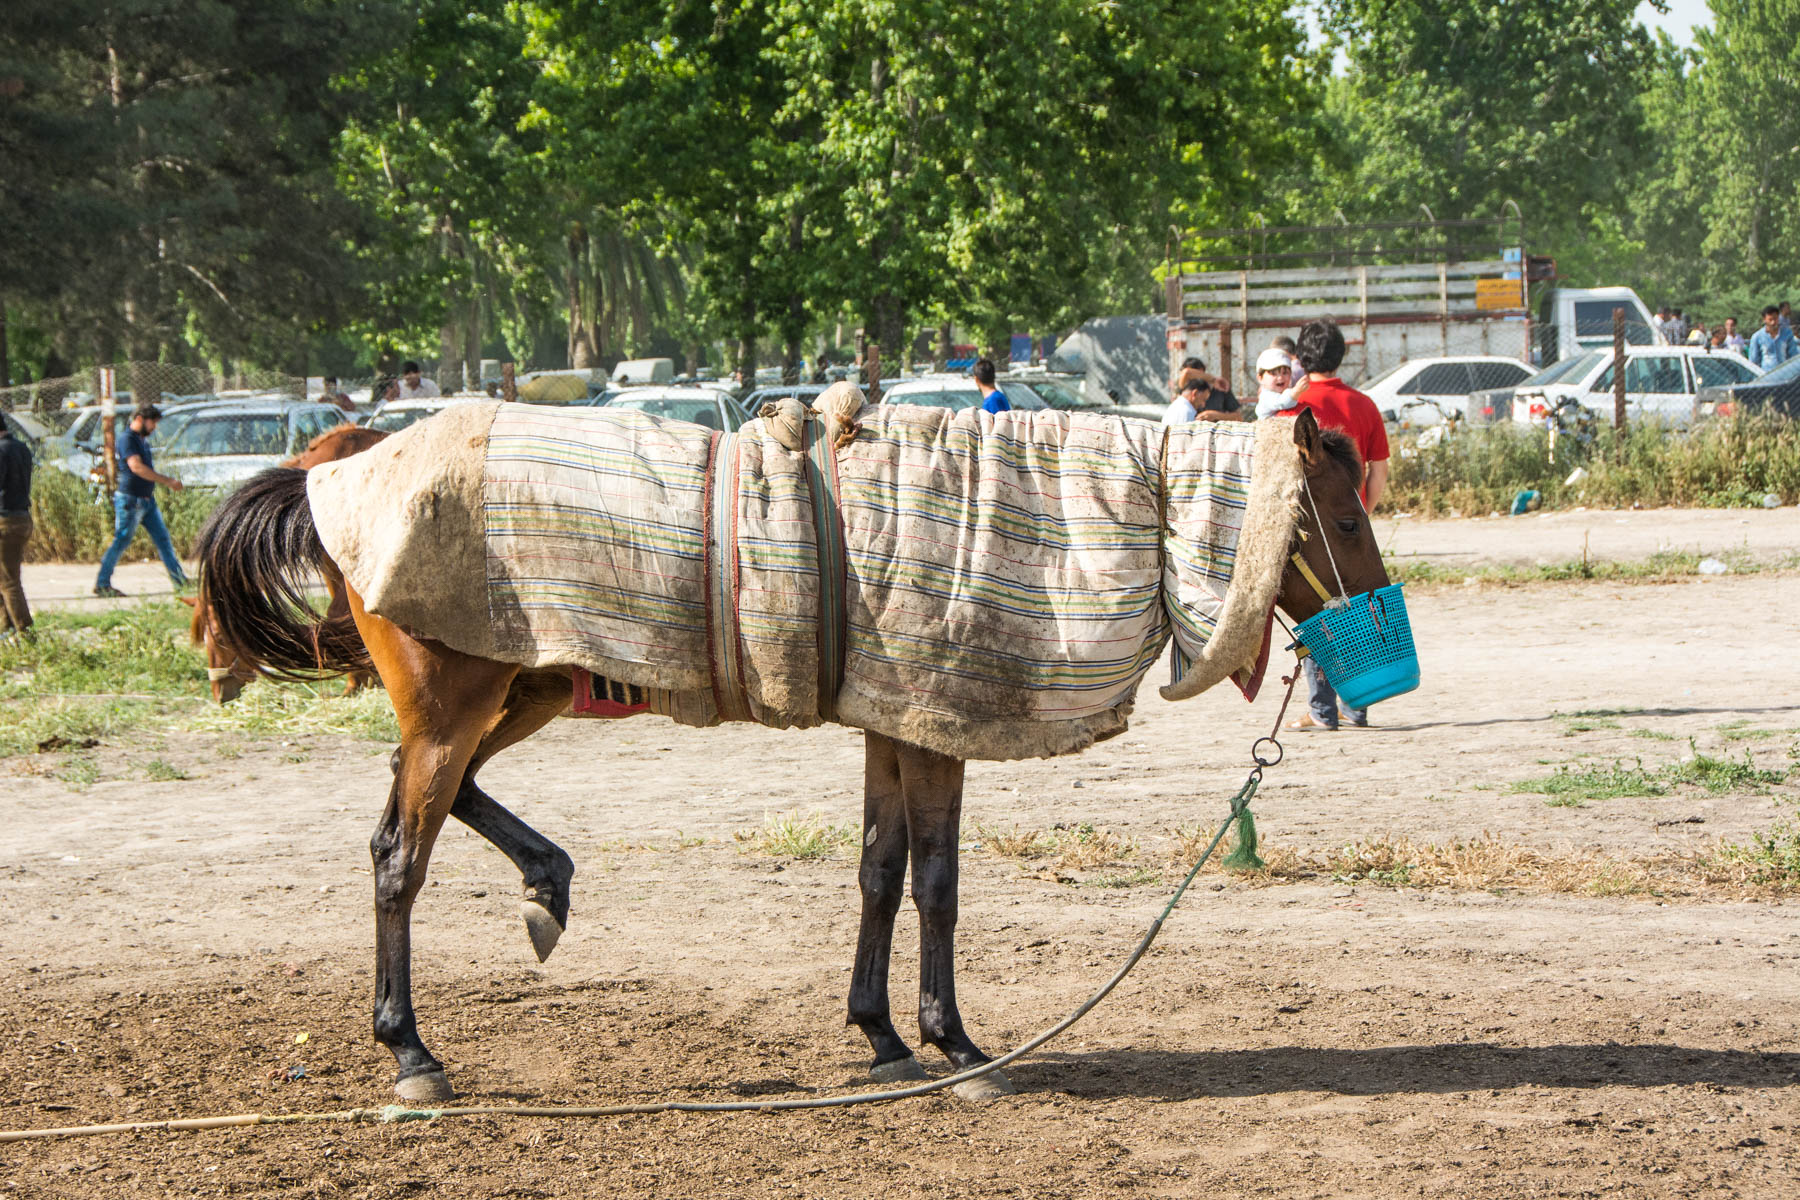 A horse tied to the ground at the hippodrome in Gonbad-e Kavus, Iran